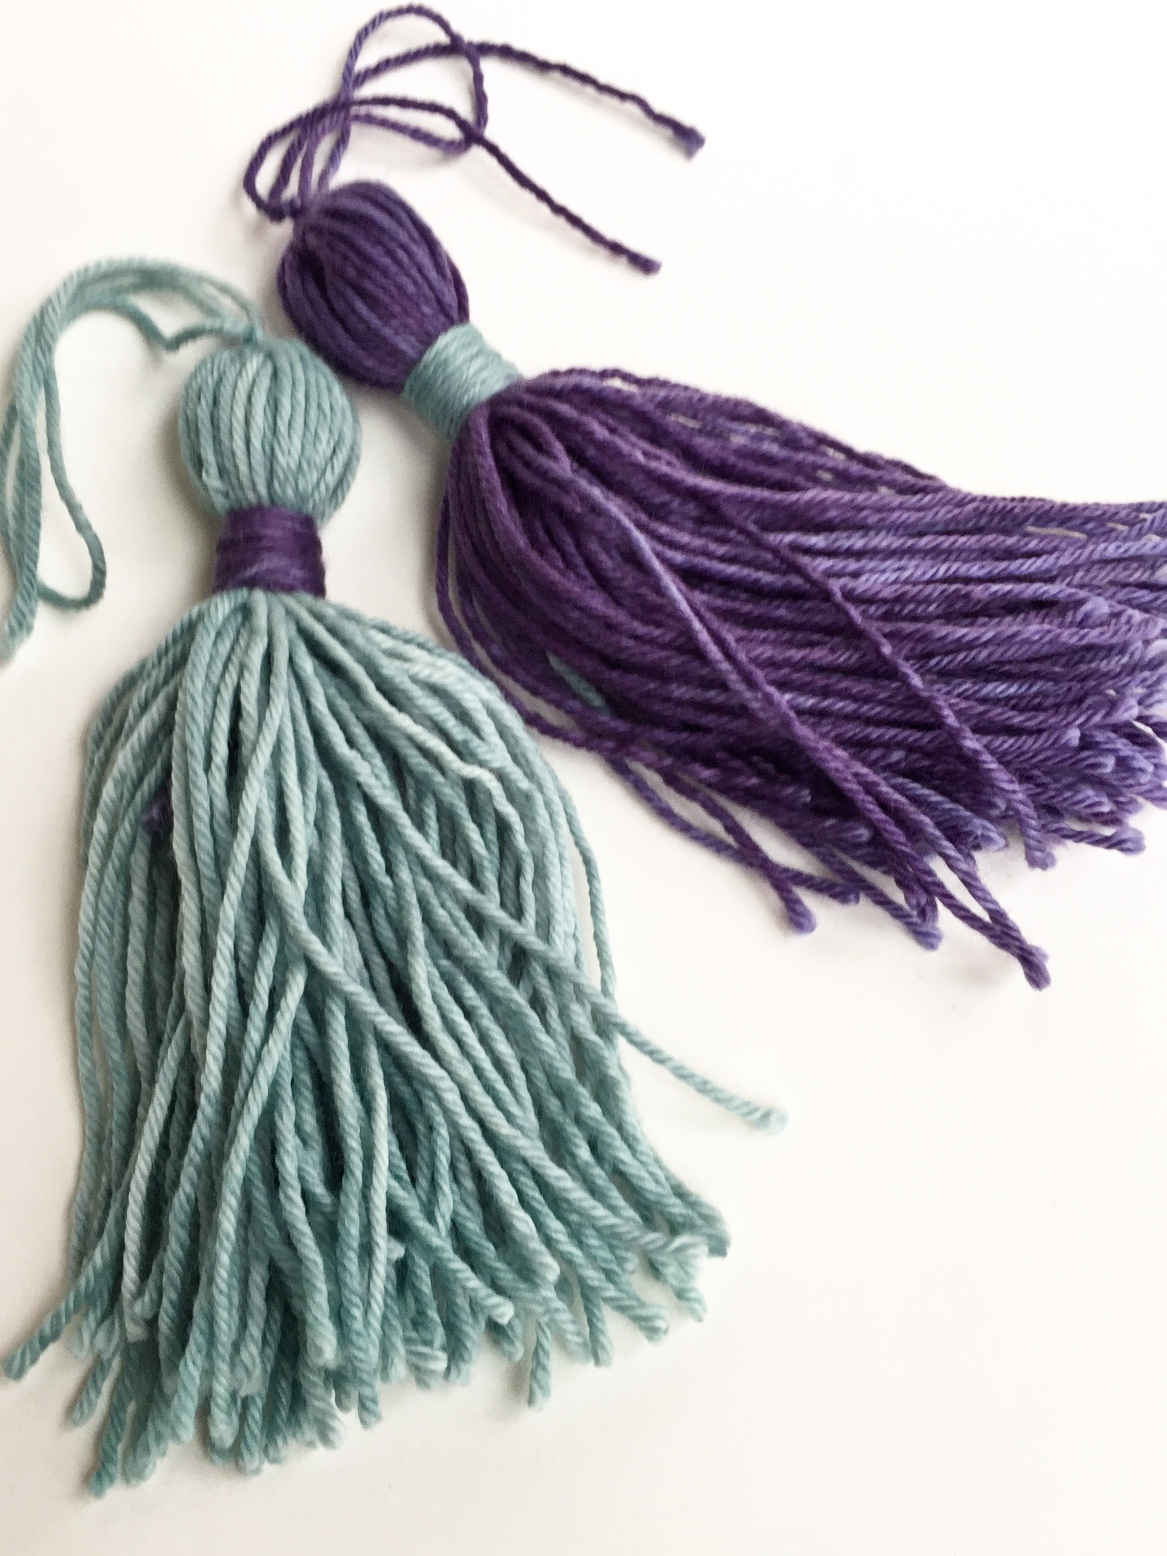 Hand made tassels in Celadon and Aubergine cowgirlblues Merino DK wool